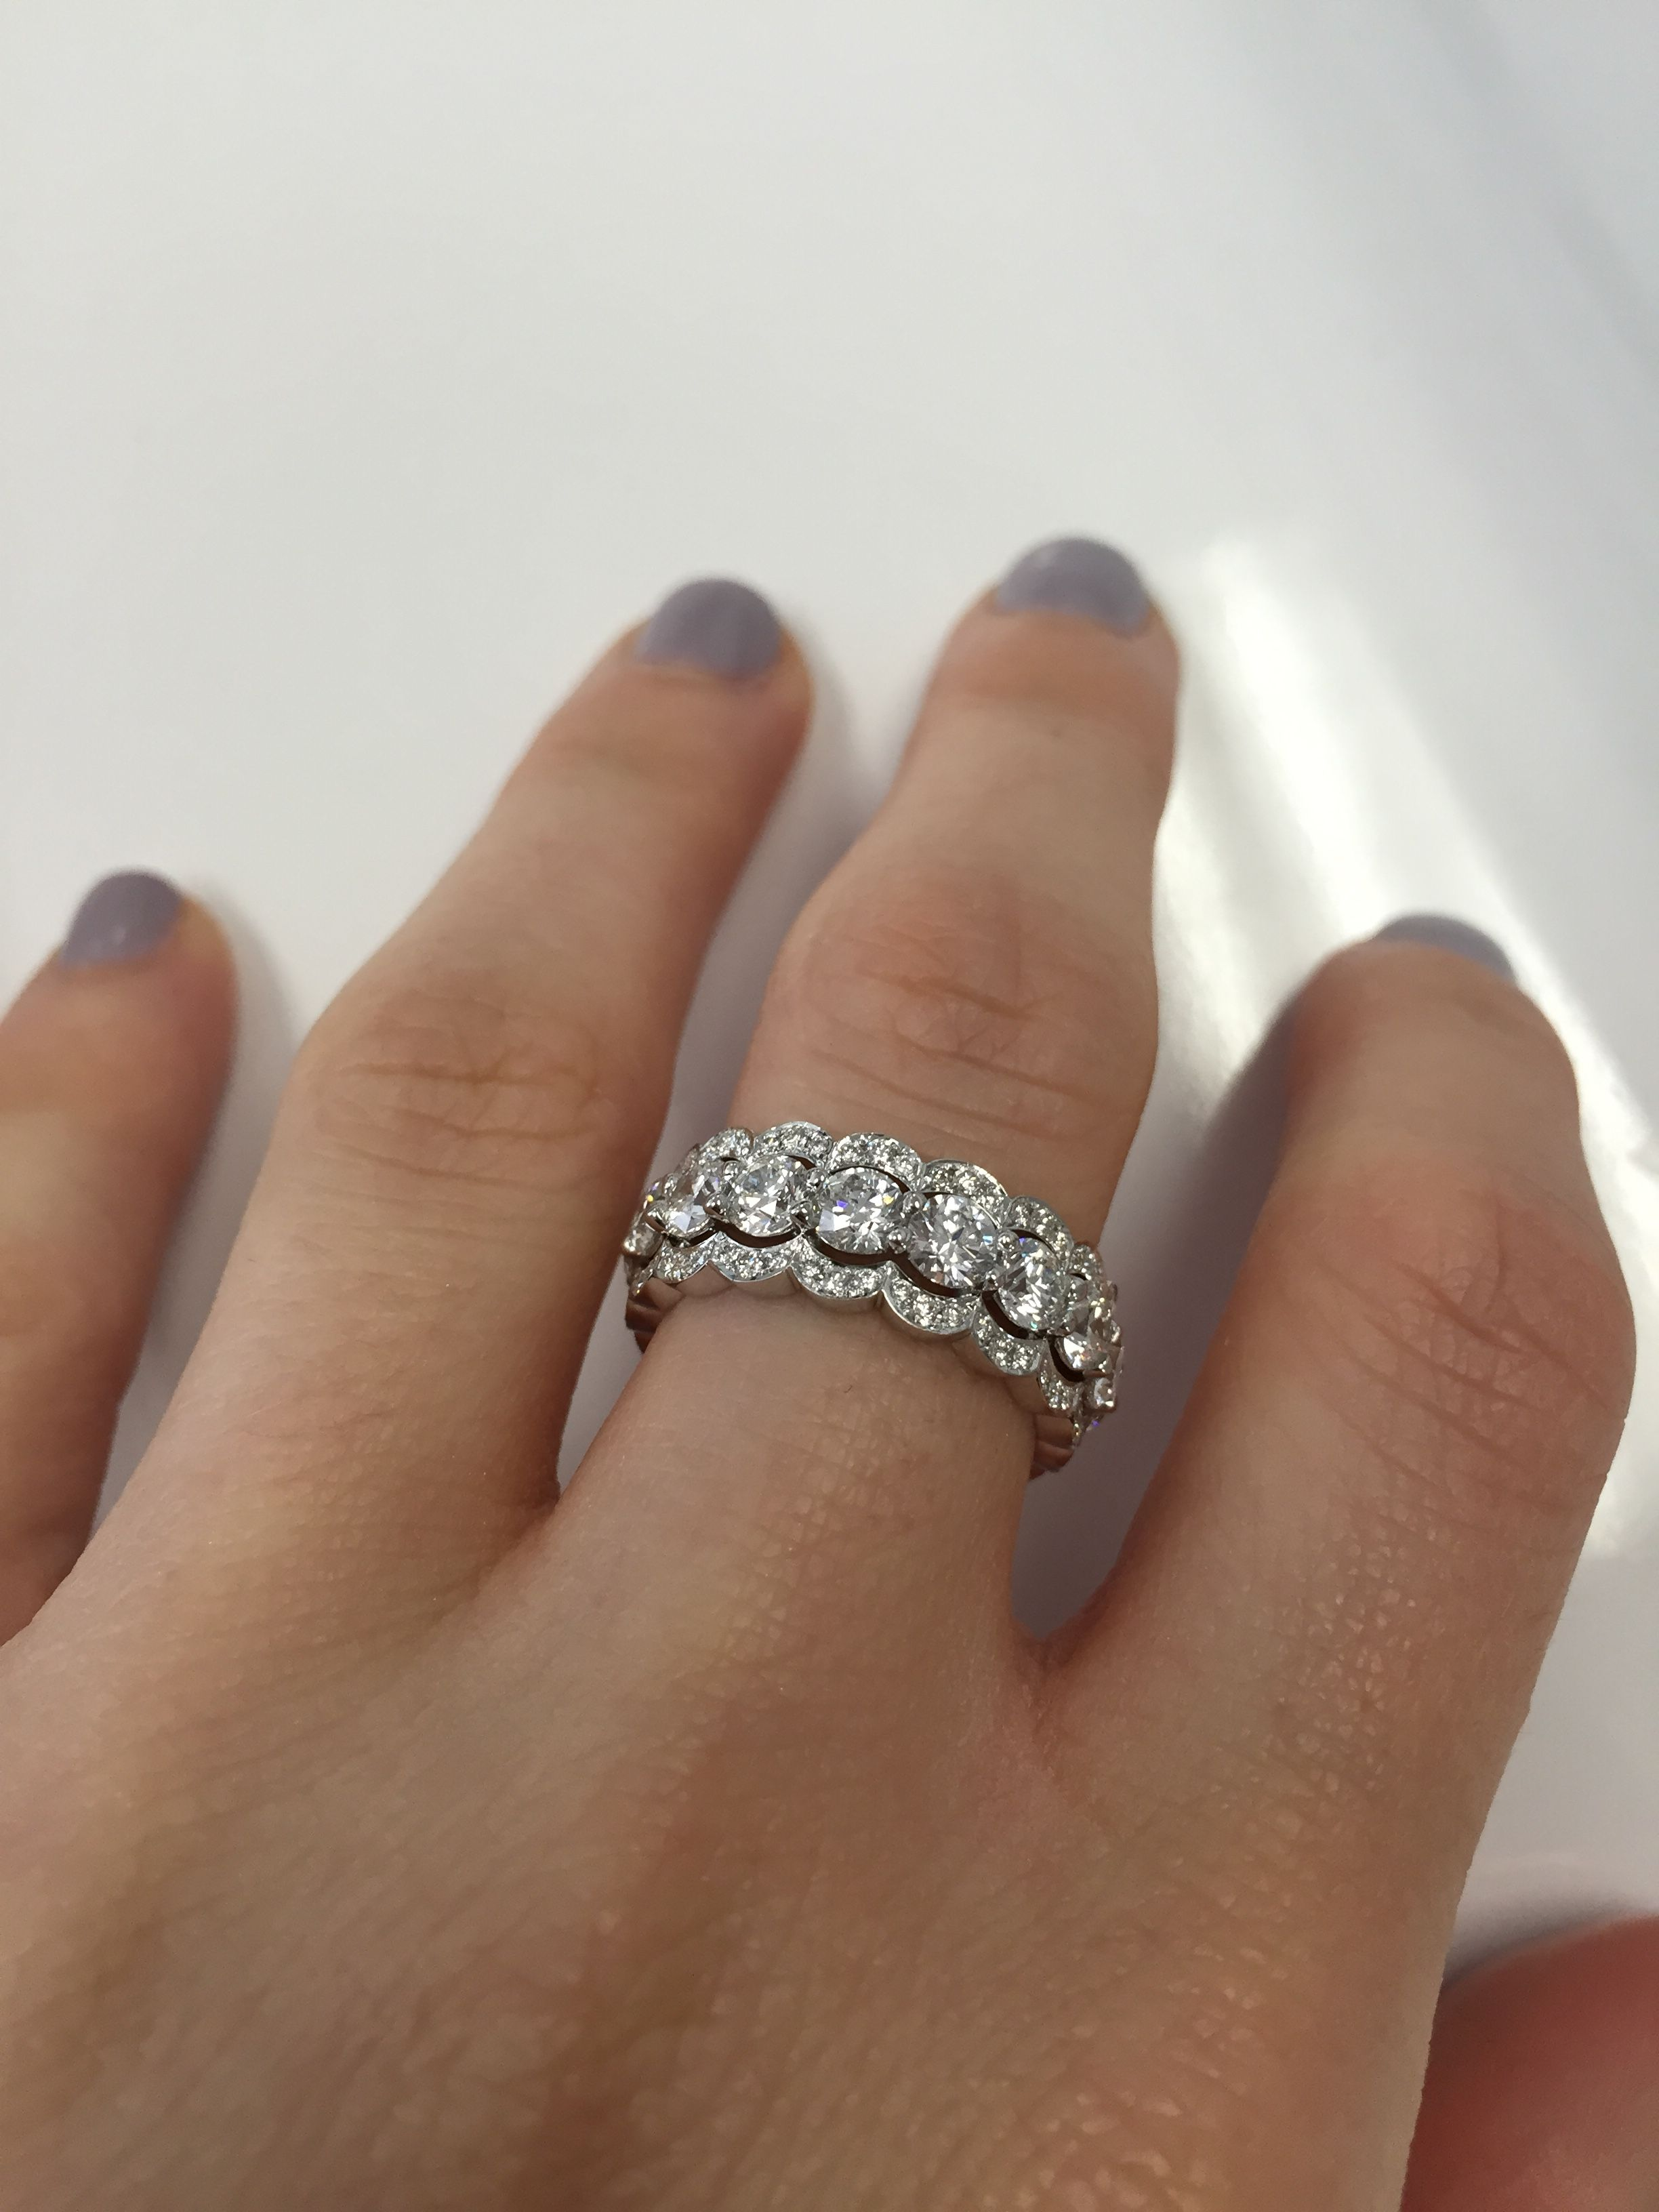 glamorous make of these eternity which bands rings pin grandiose catches with a statement wide band our sparklers